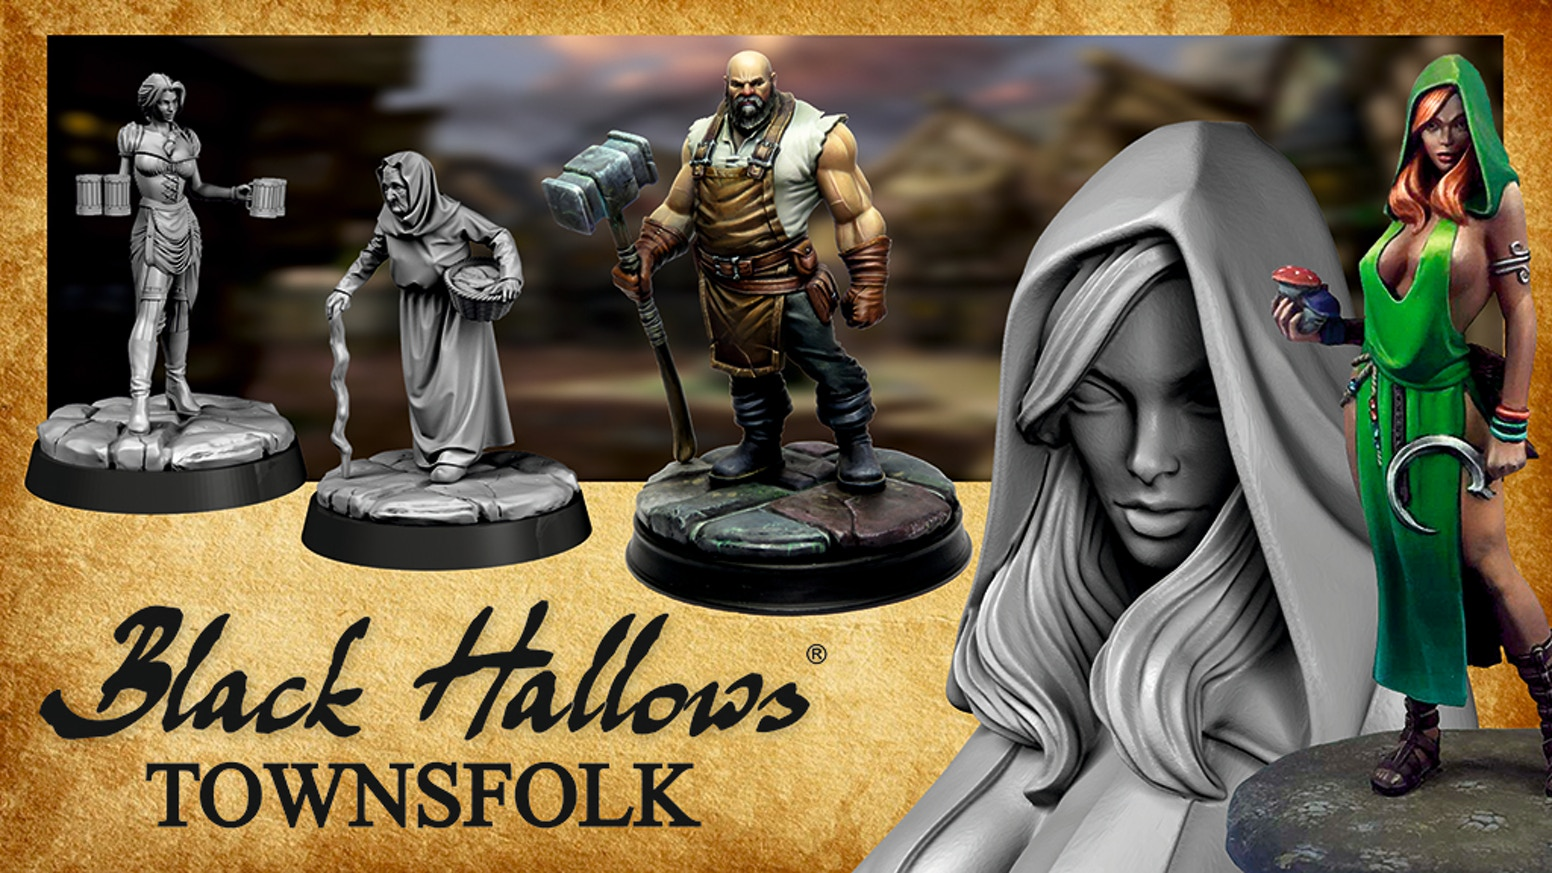 Black Hallows Townsfolk by Jon Stynes — Kickstarter